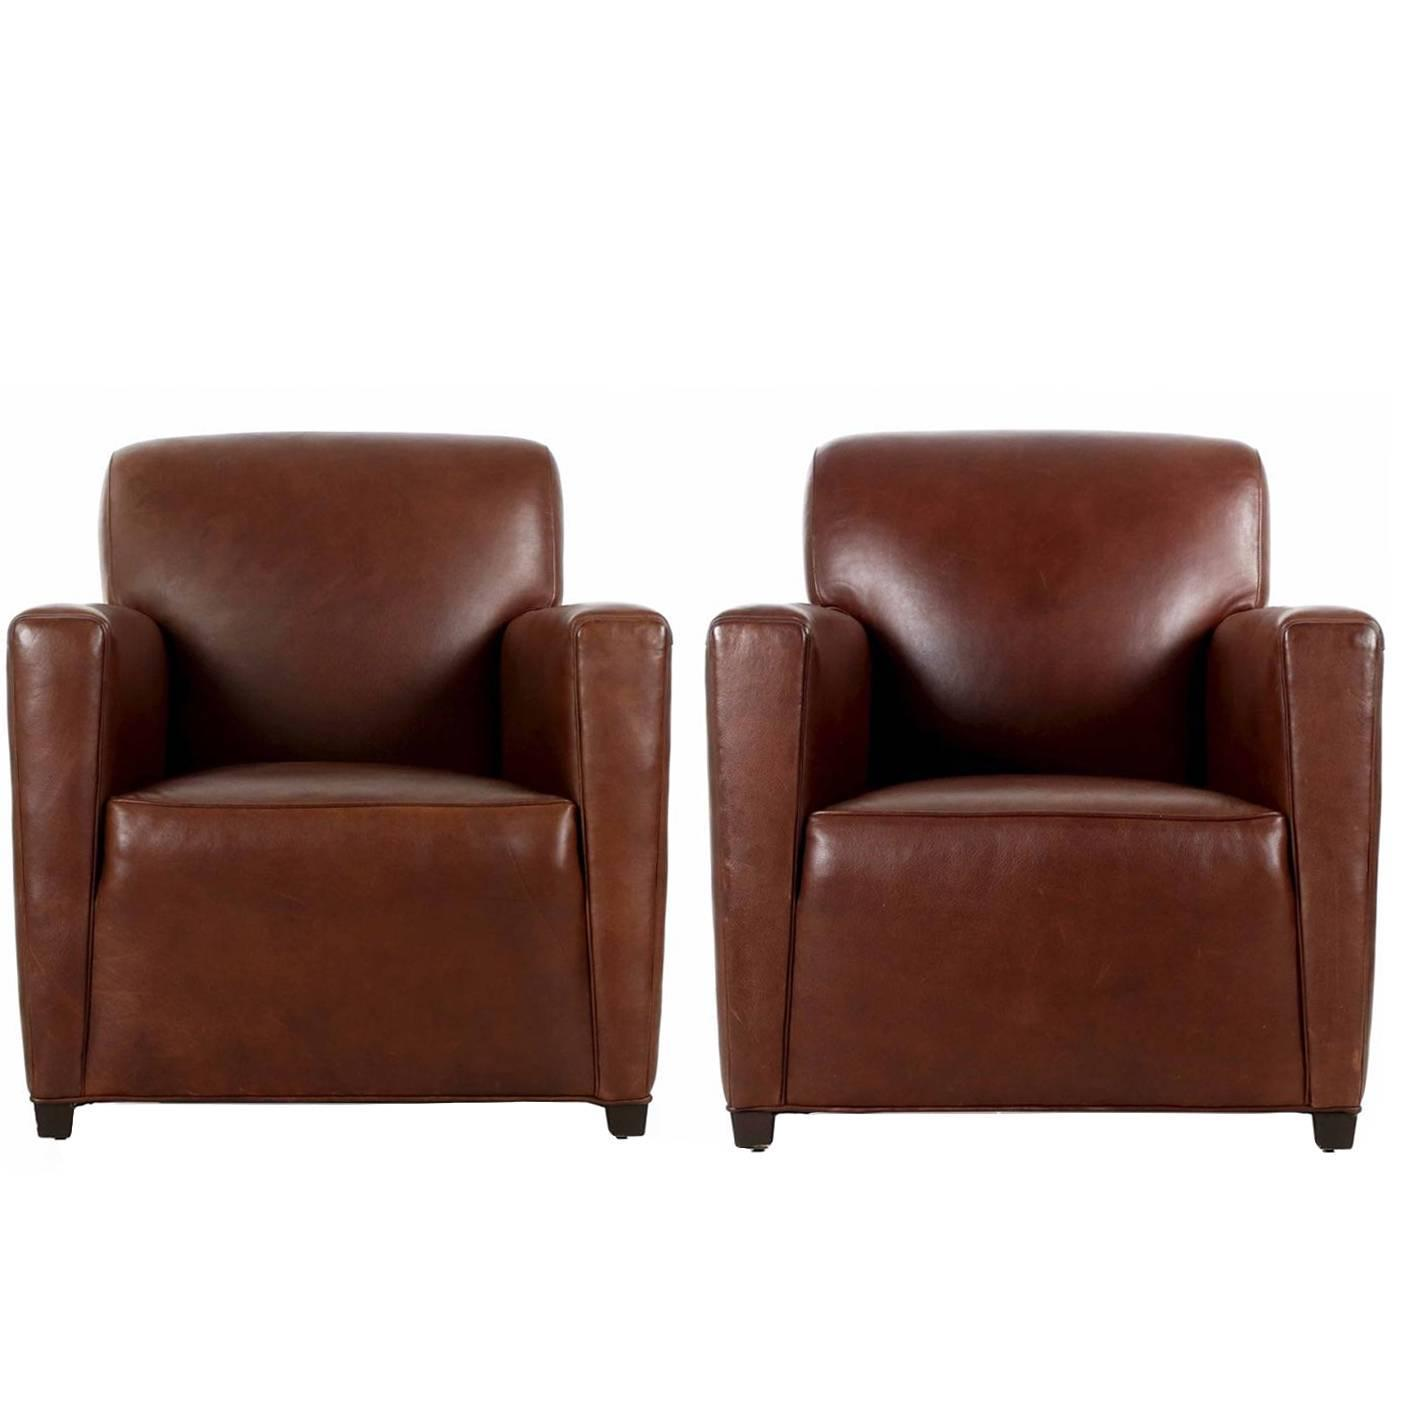 Merveilleux Pair Of Coach Inc. Brown Leather Club Chairs In The Art Deco Taste At  1stdibs